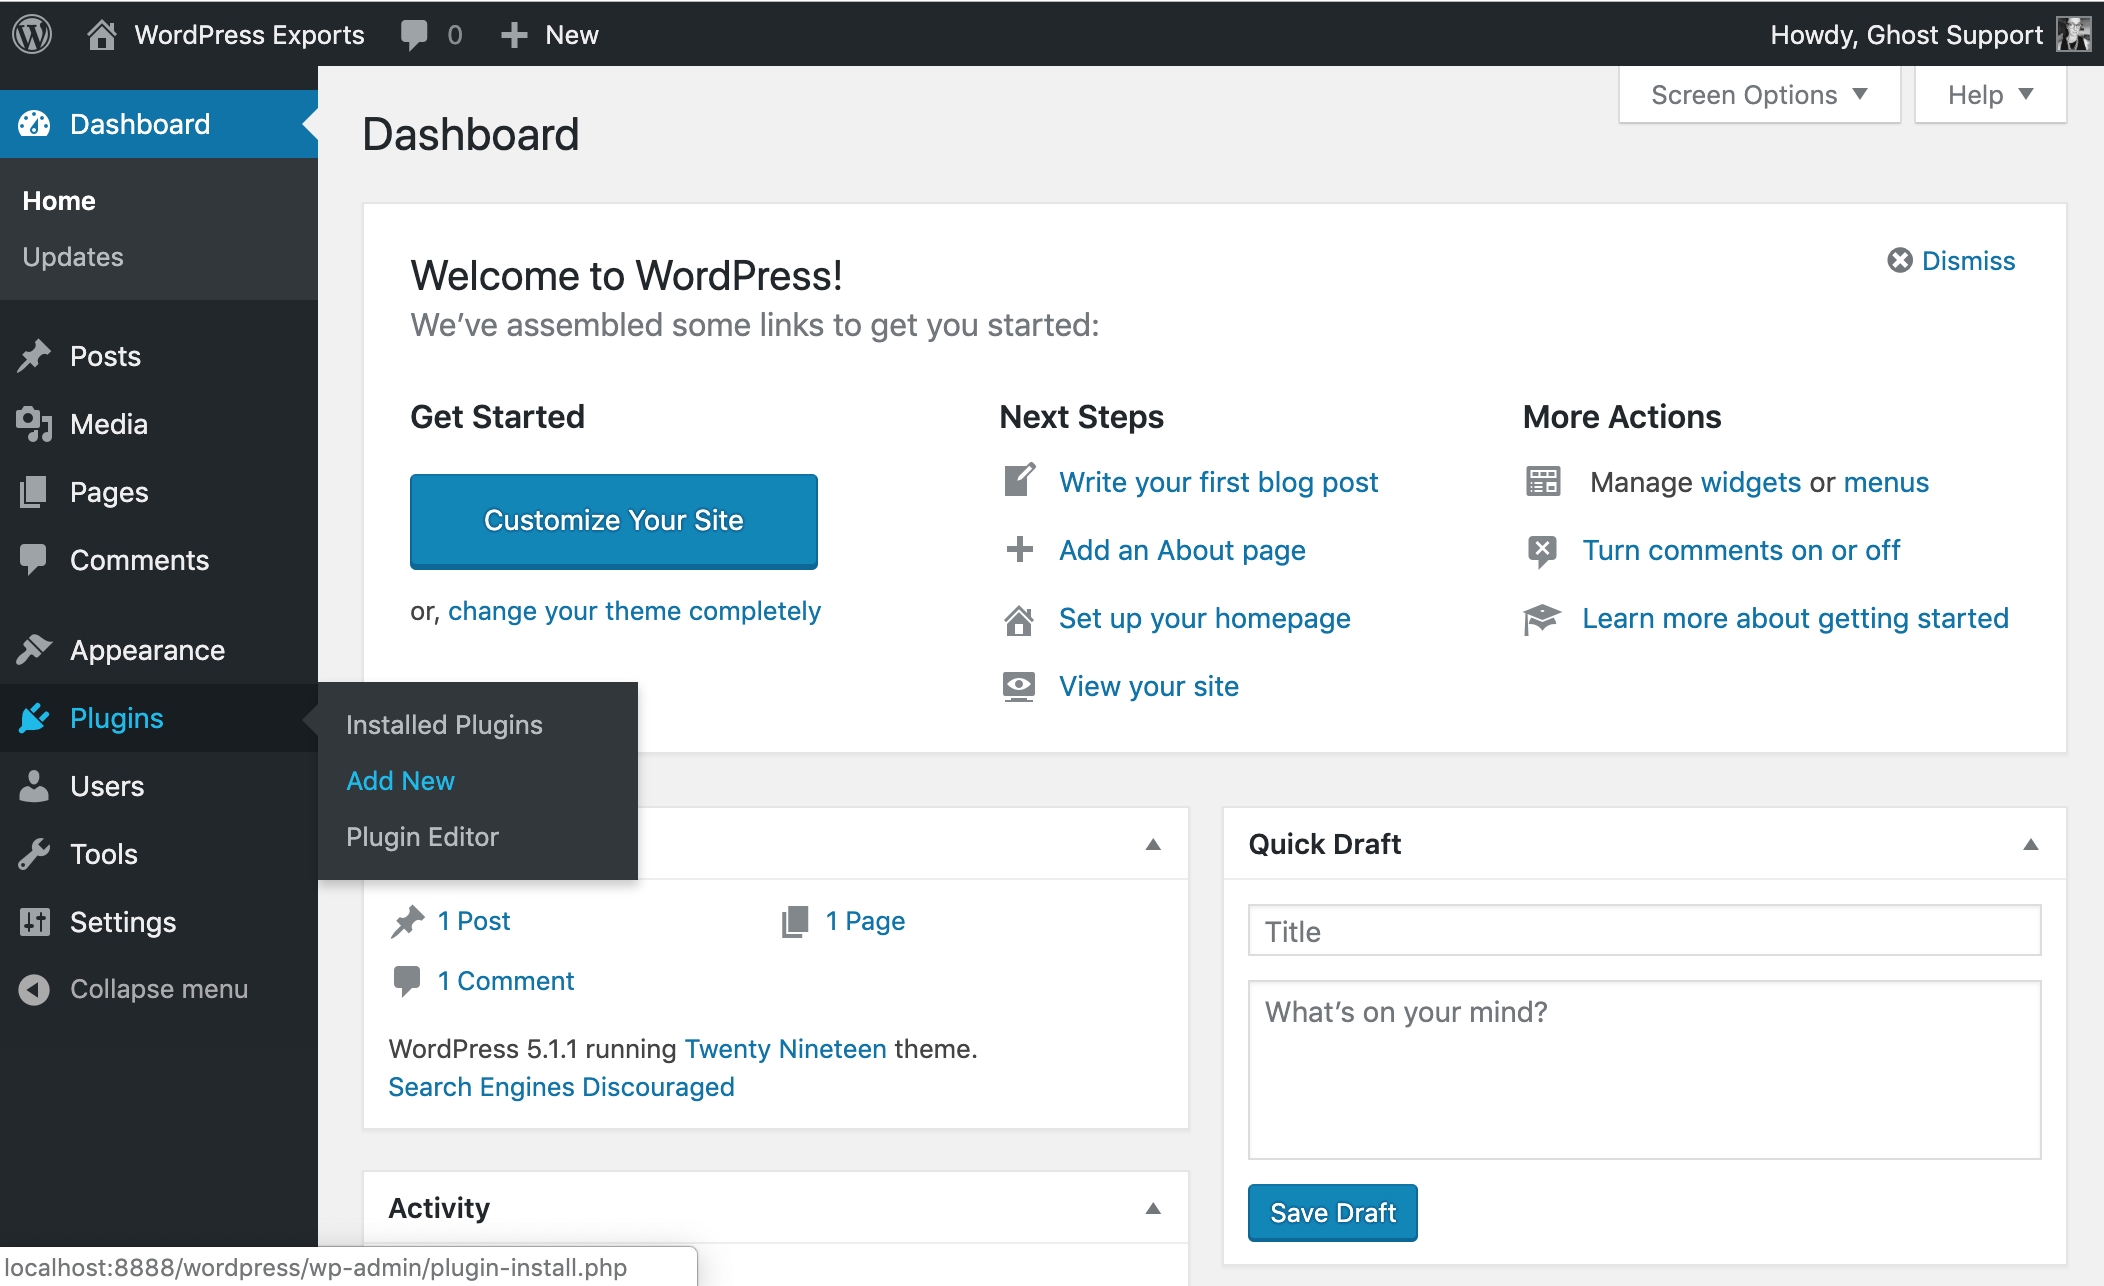 Migrating from WordPress to Ghost – FAQ